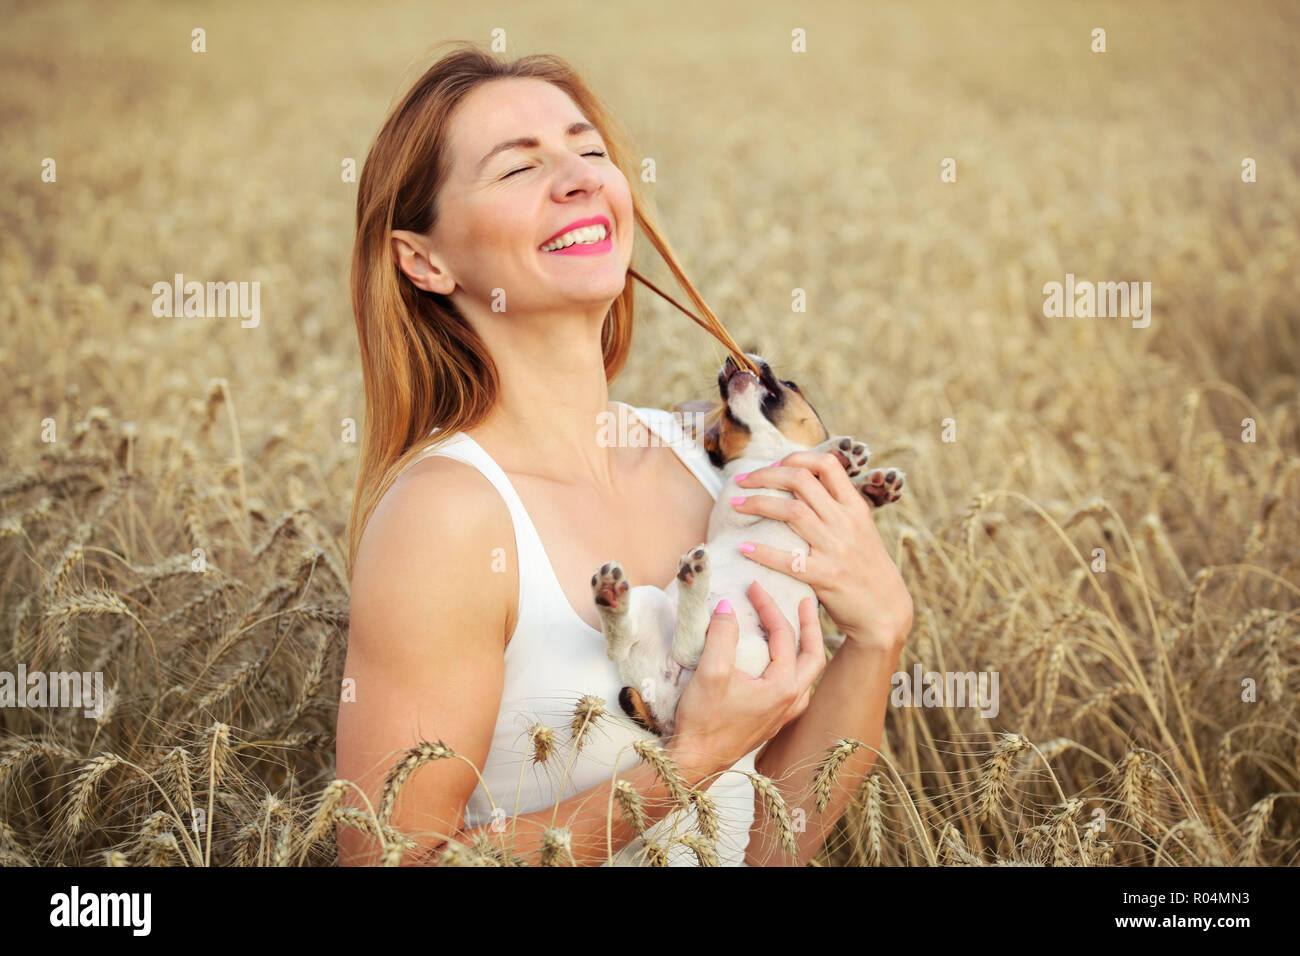 Woman with Jack Russell terrier puppy on her hands, wheat field in background, dog is restless and chewing the hair instead of posing. - Stock Image